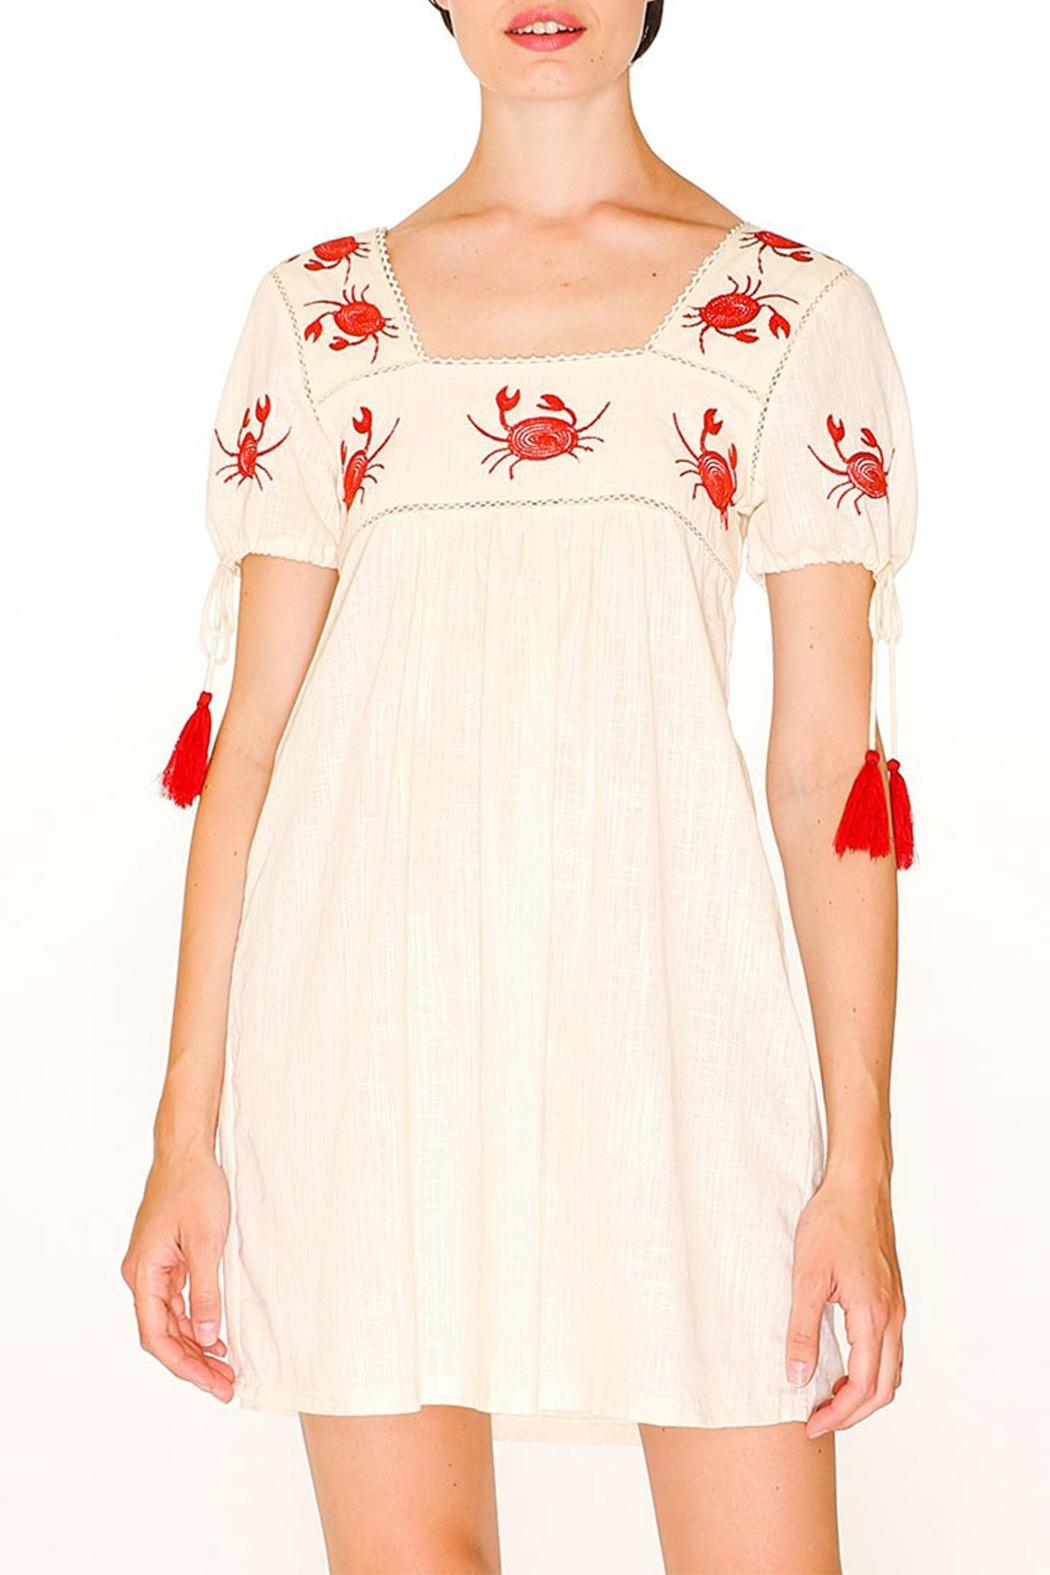 PepaLoves Crab Embroidered Dress - Main Image